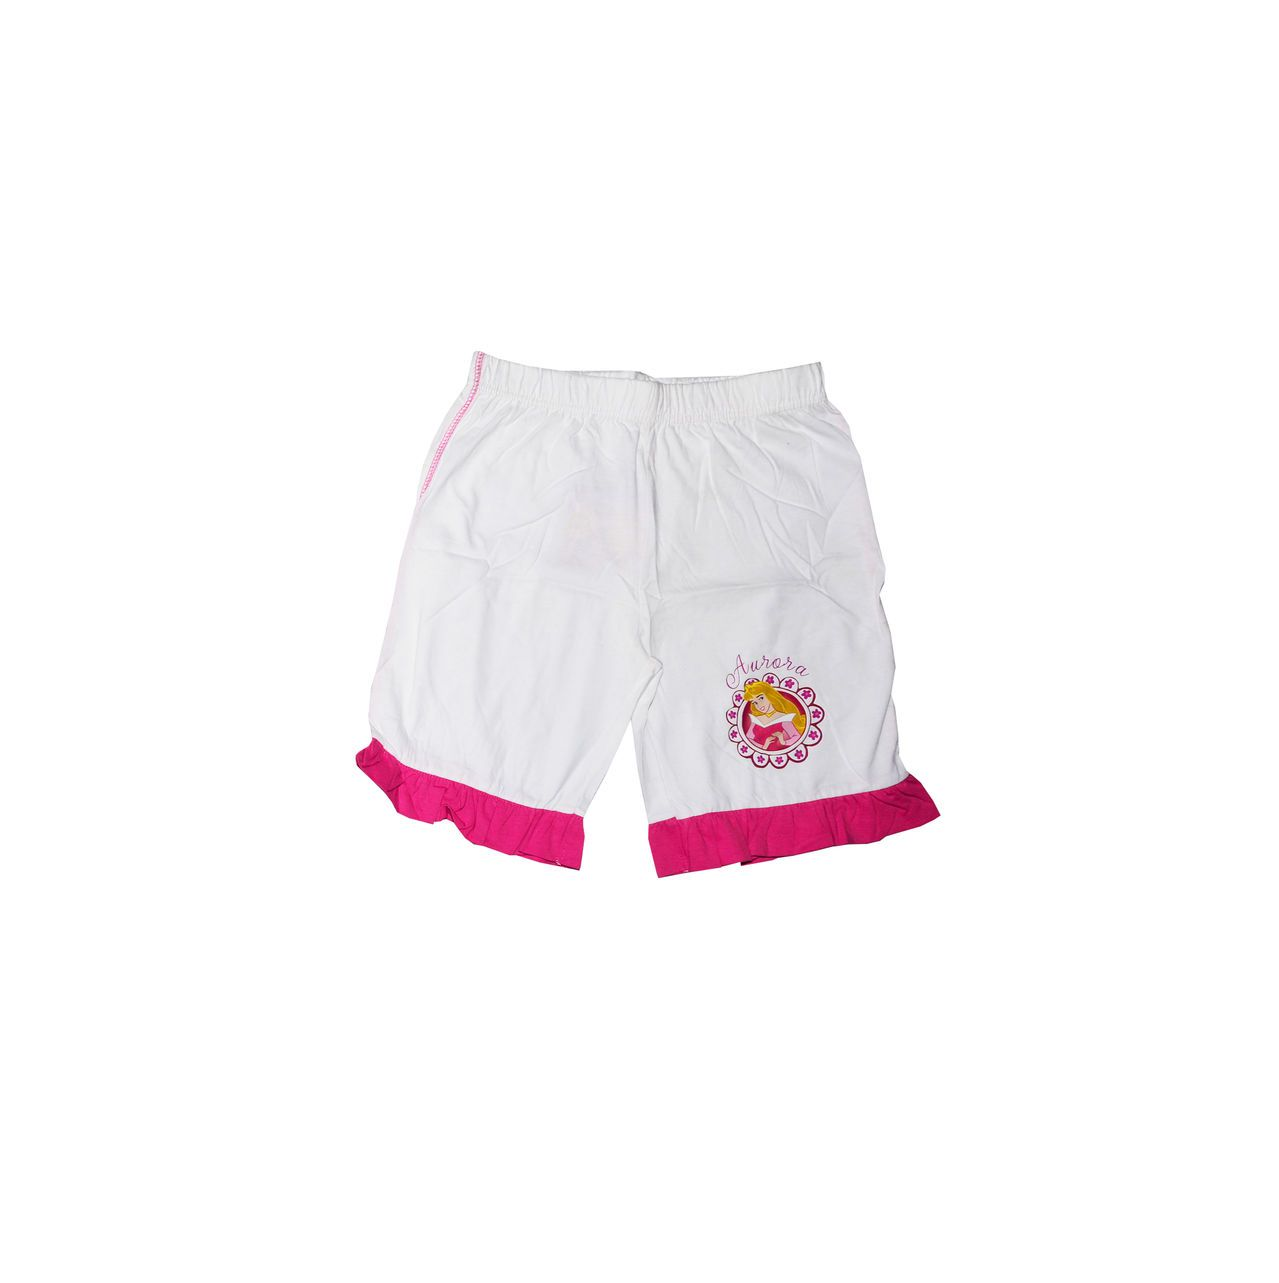 Fubu White Shorts